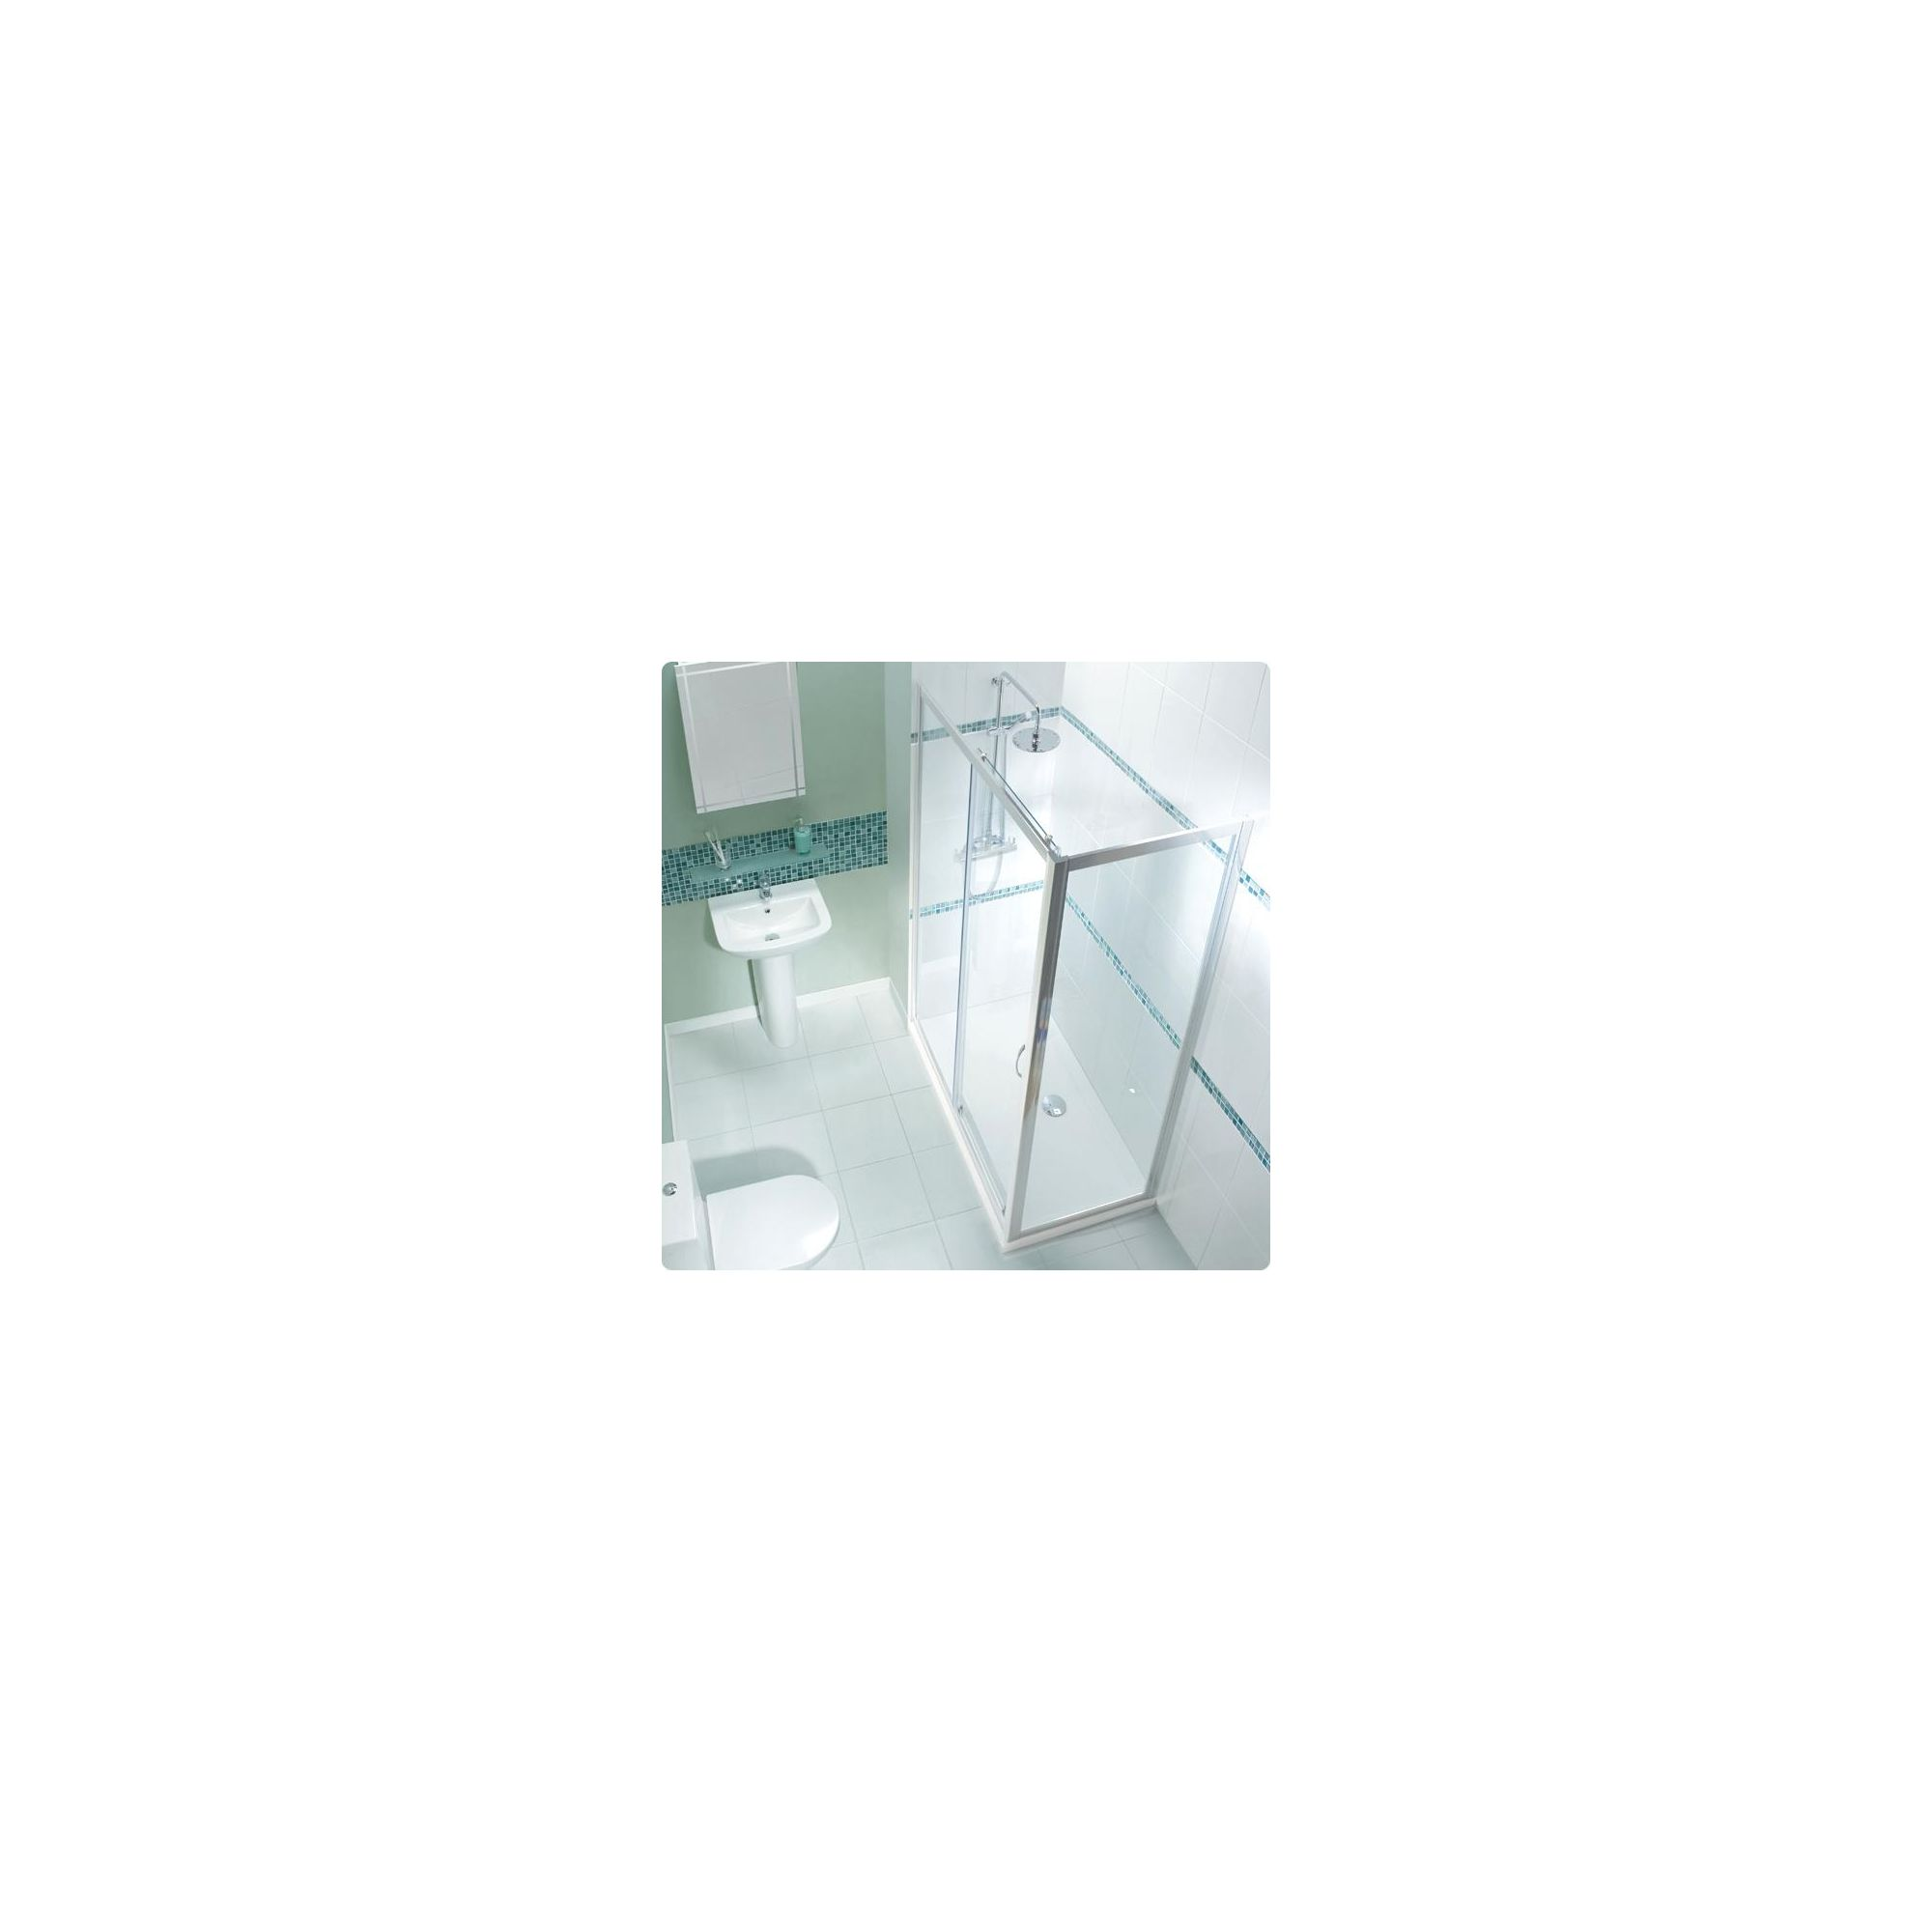 Balterley Framed Sliding Shower Enclosure, 1500mm x 700mm, Low Profile Tray, 6mm Glass at Tesco Direct